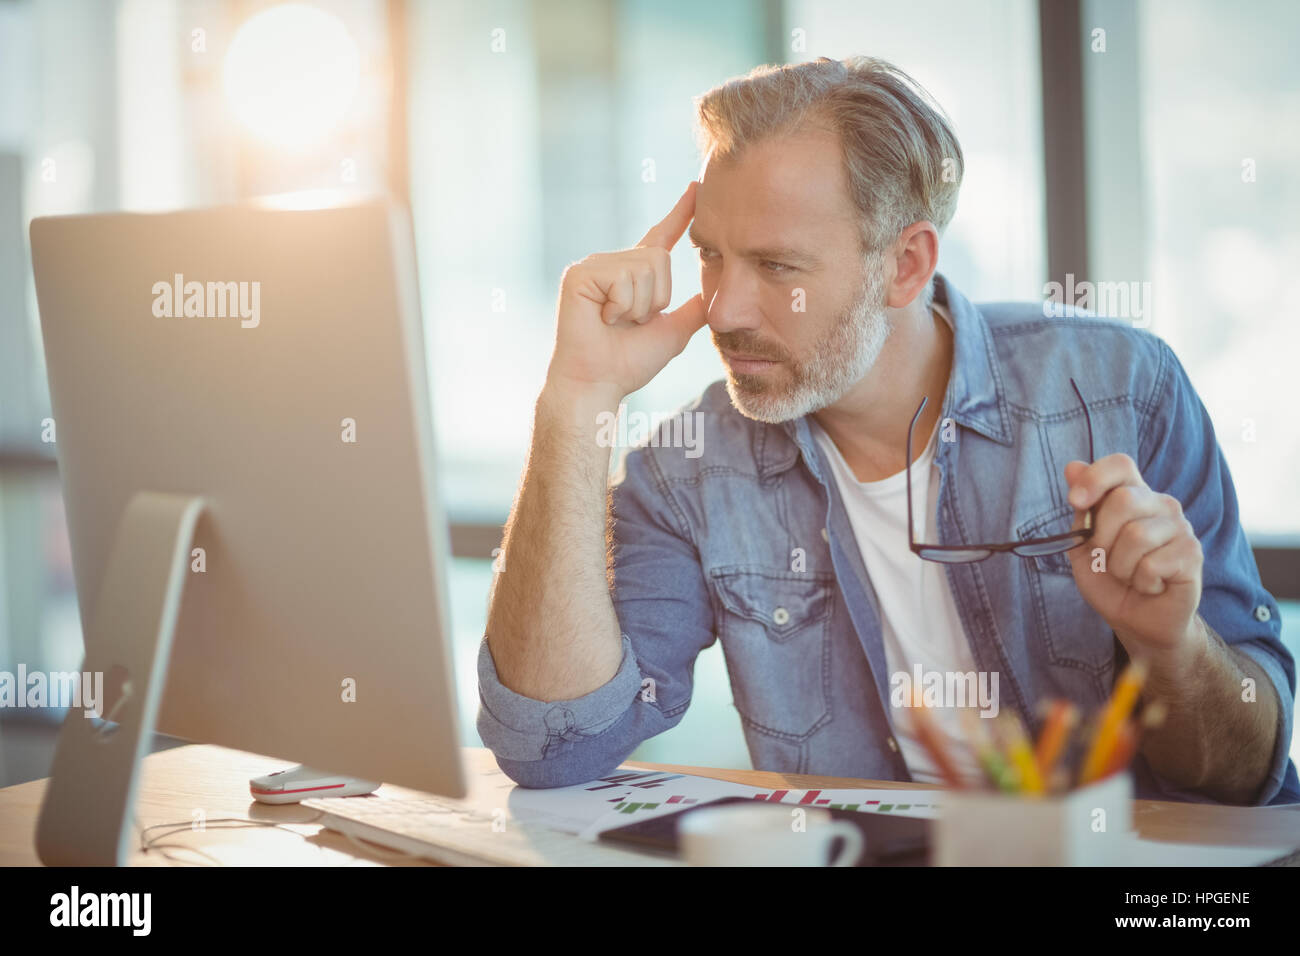 Male graphic designer working on computer in office - Stock Image